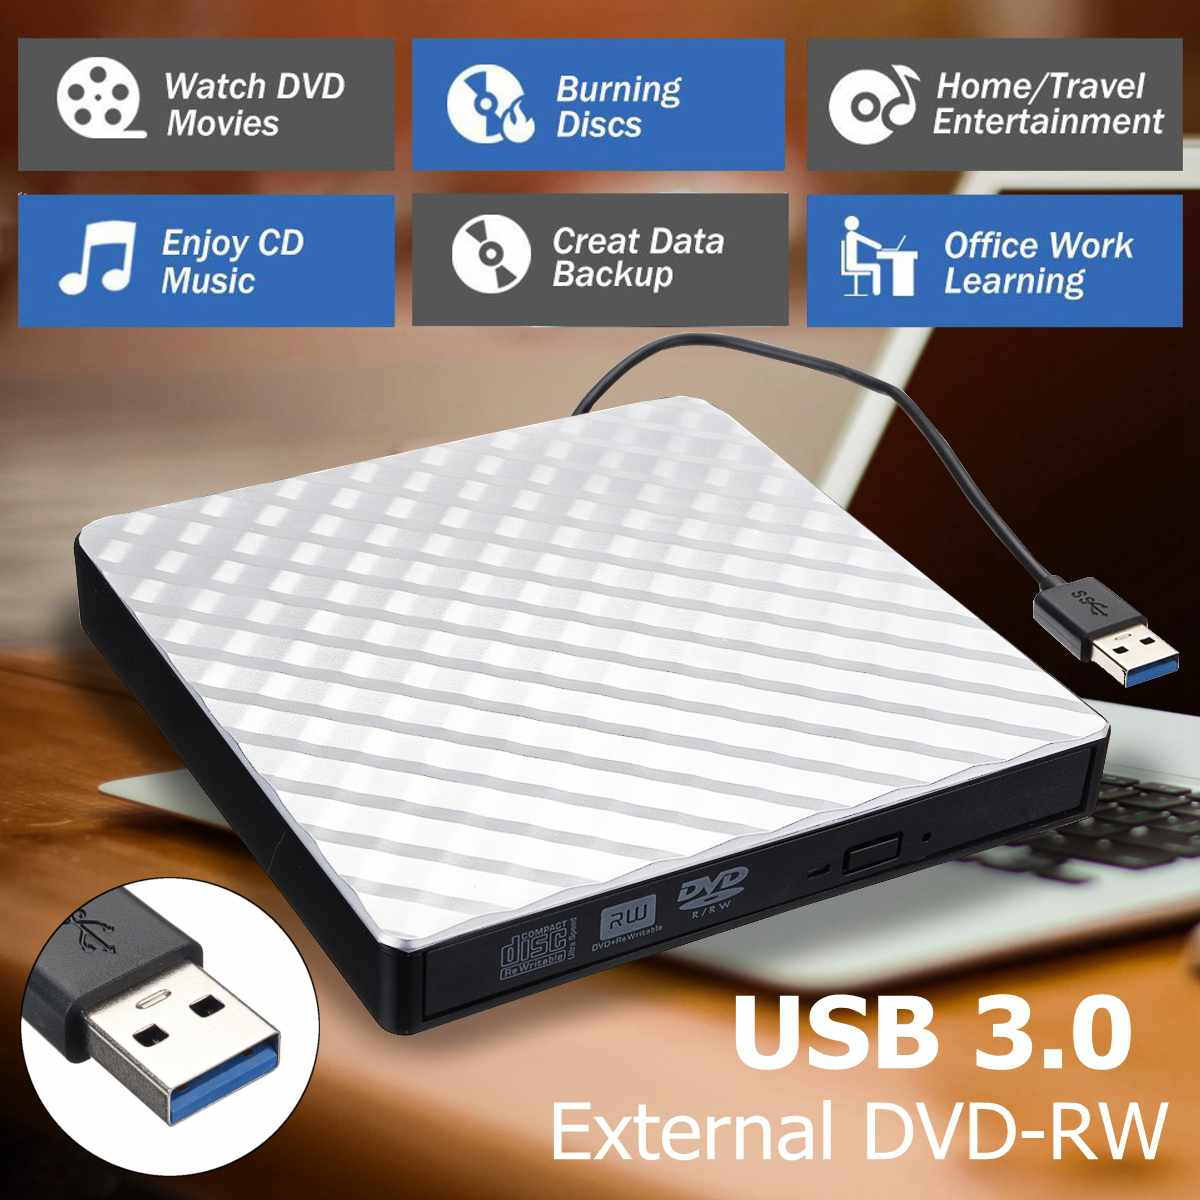 External USB 3.0 DVD RW CD Writer Slim Carbon Grain Drive Burner Reader Player For PC Laptop Optical Drive